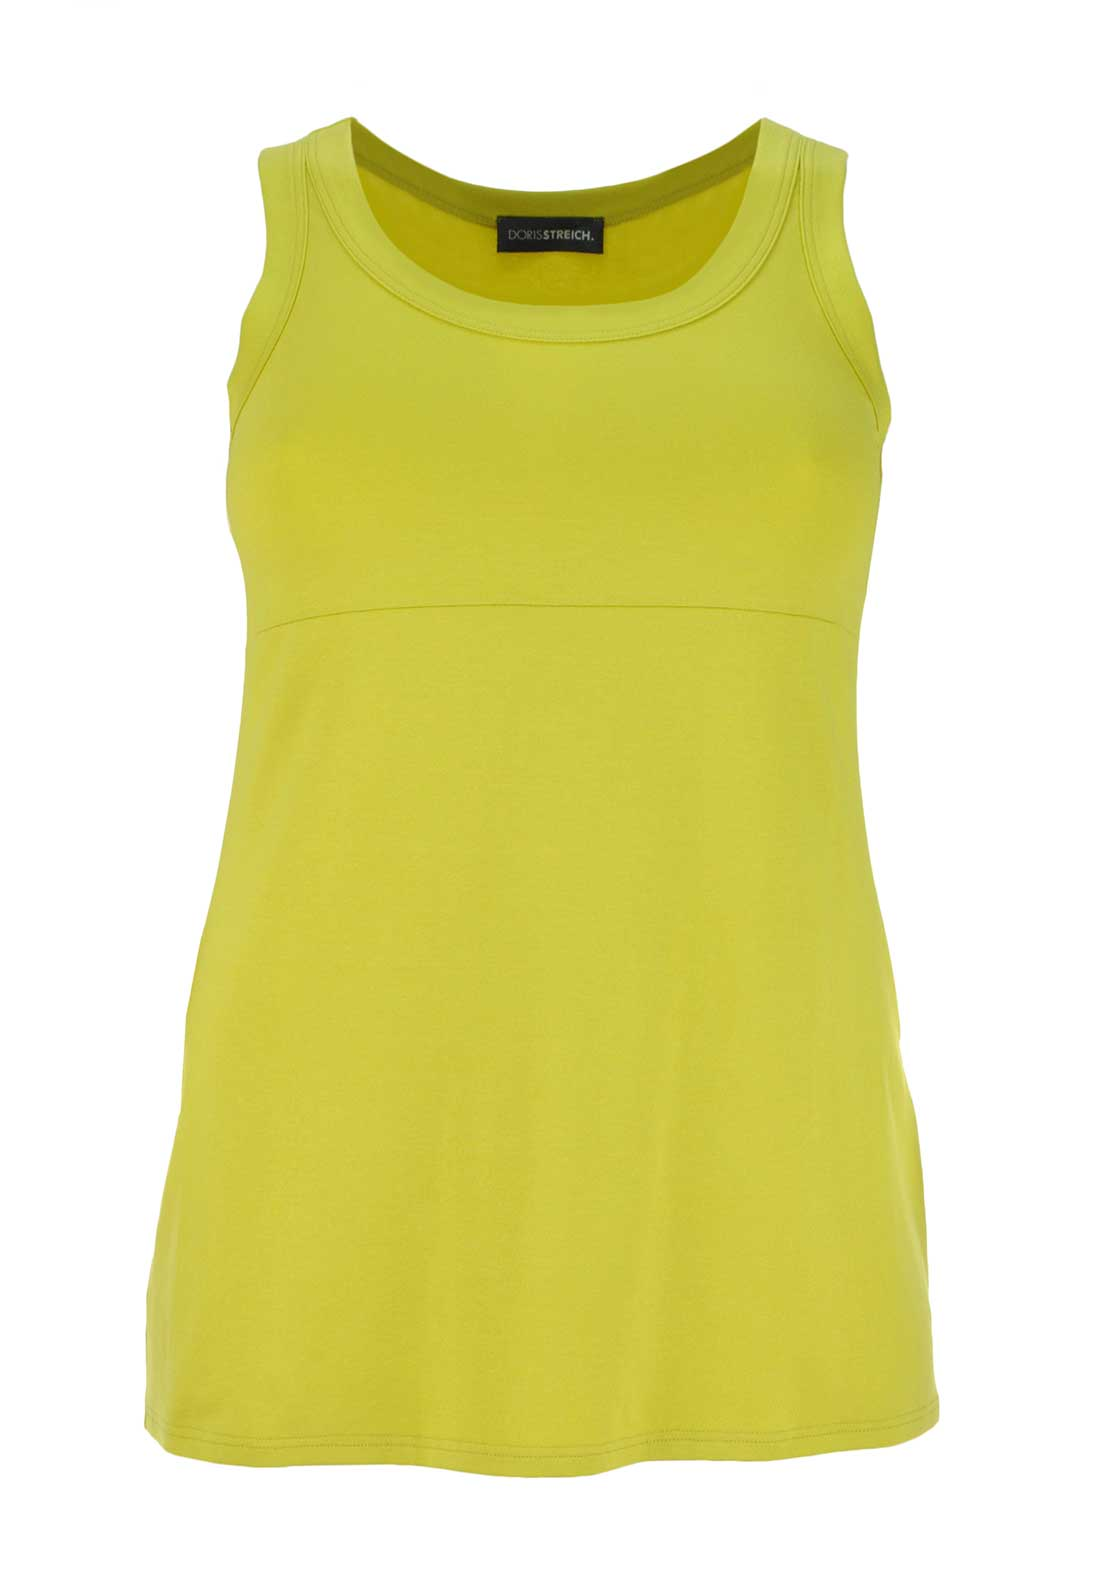 Doris Streich Sleeveless Vest Top, Lime Green